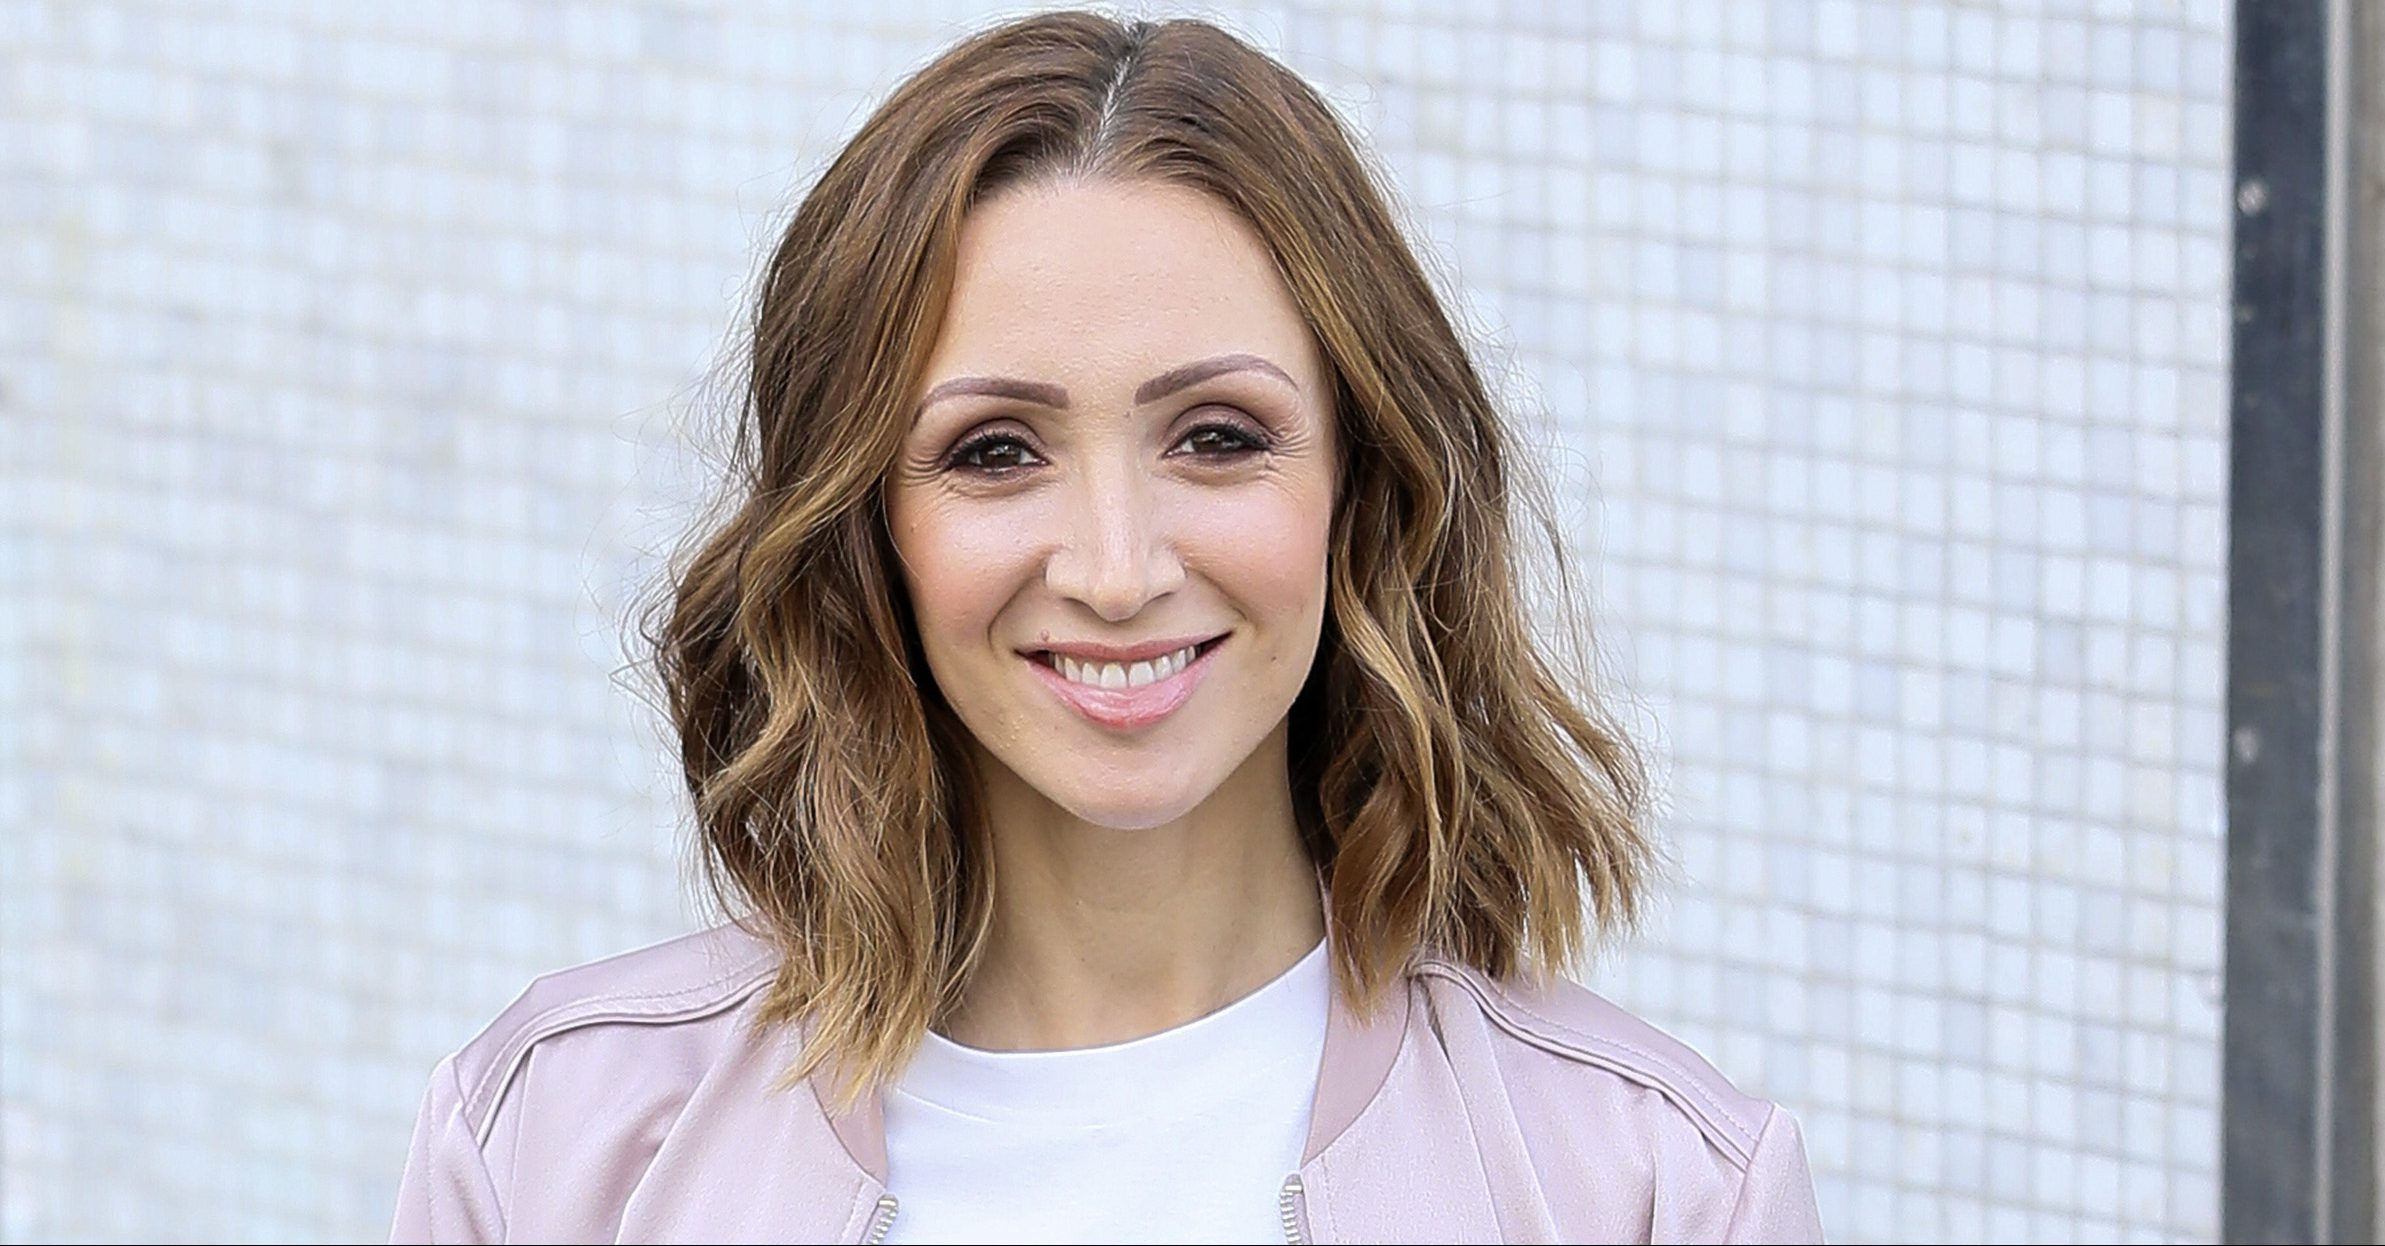 Lucy-Jo Hudson breaks her silence on THAT 'fall out' with ex-husband Alan Halsall